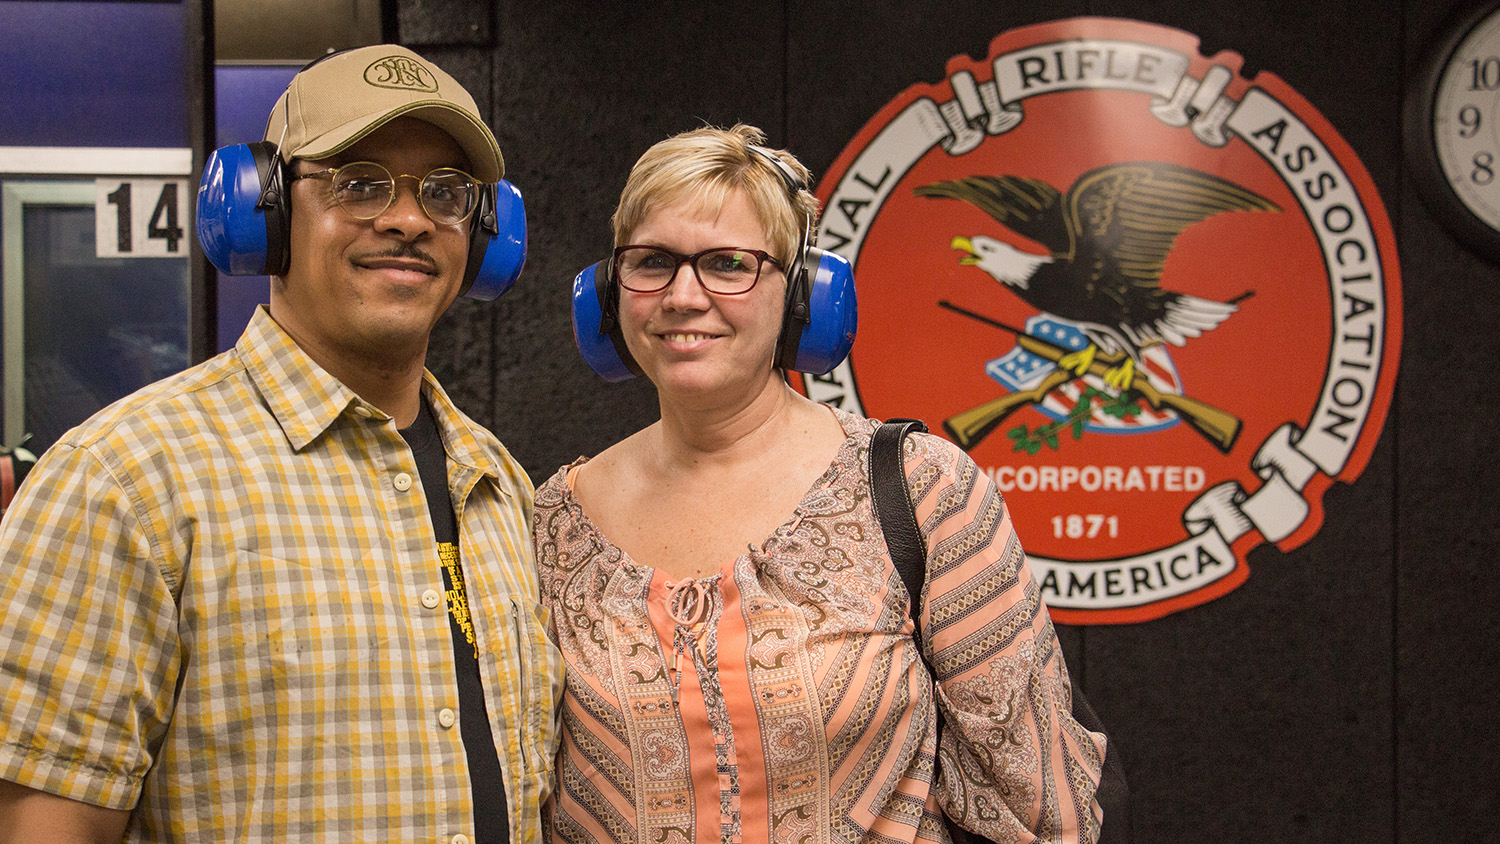 Great American Outdoor Show Raffle Winner Visits NRA Headquarters